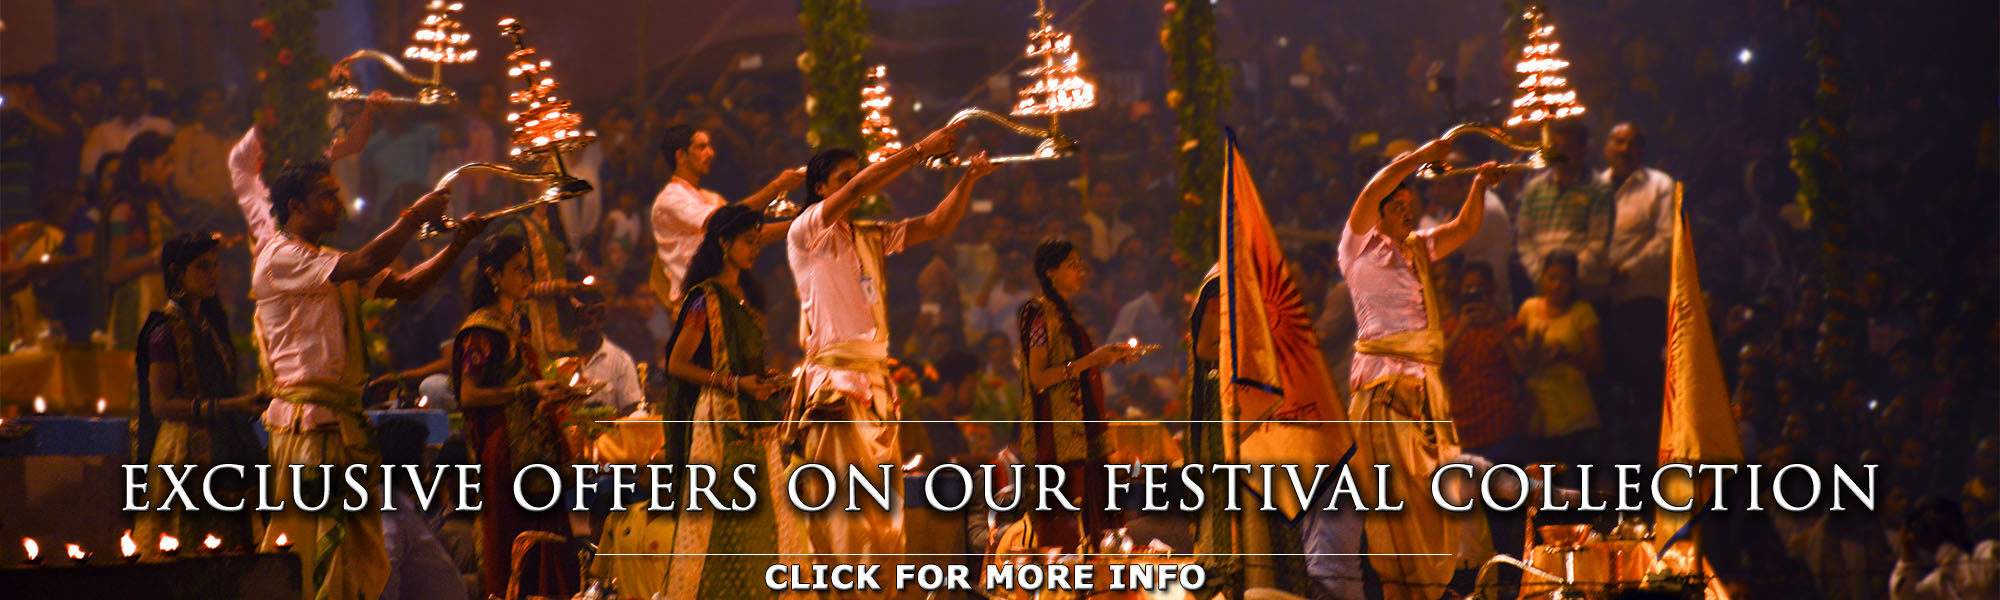 Exclusive Offers On Our Festival Collection Tours